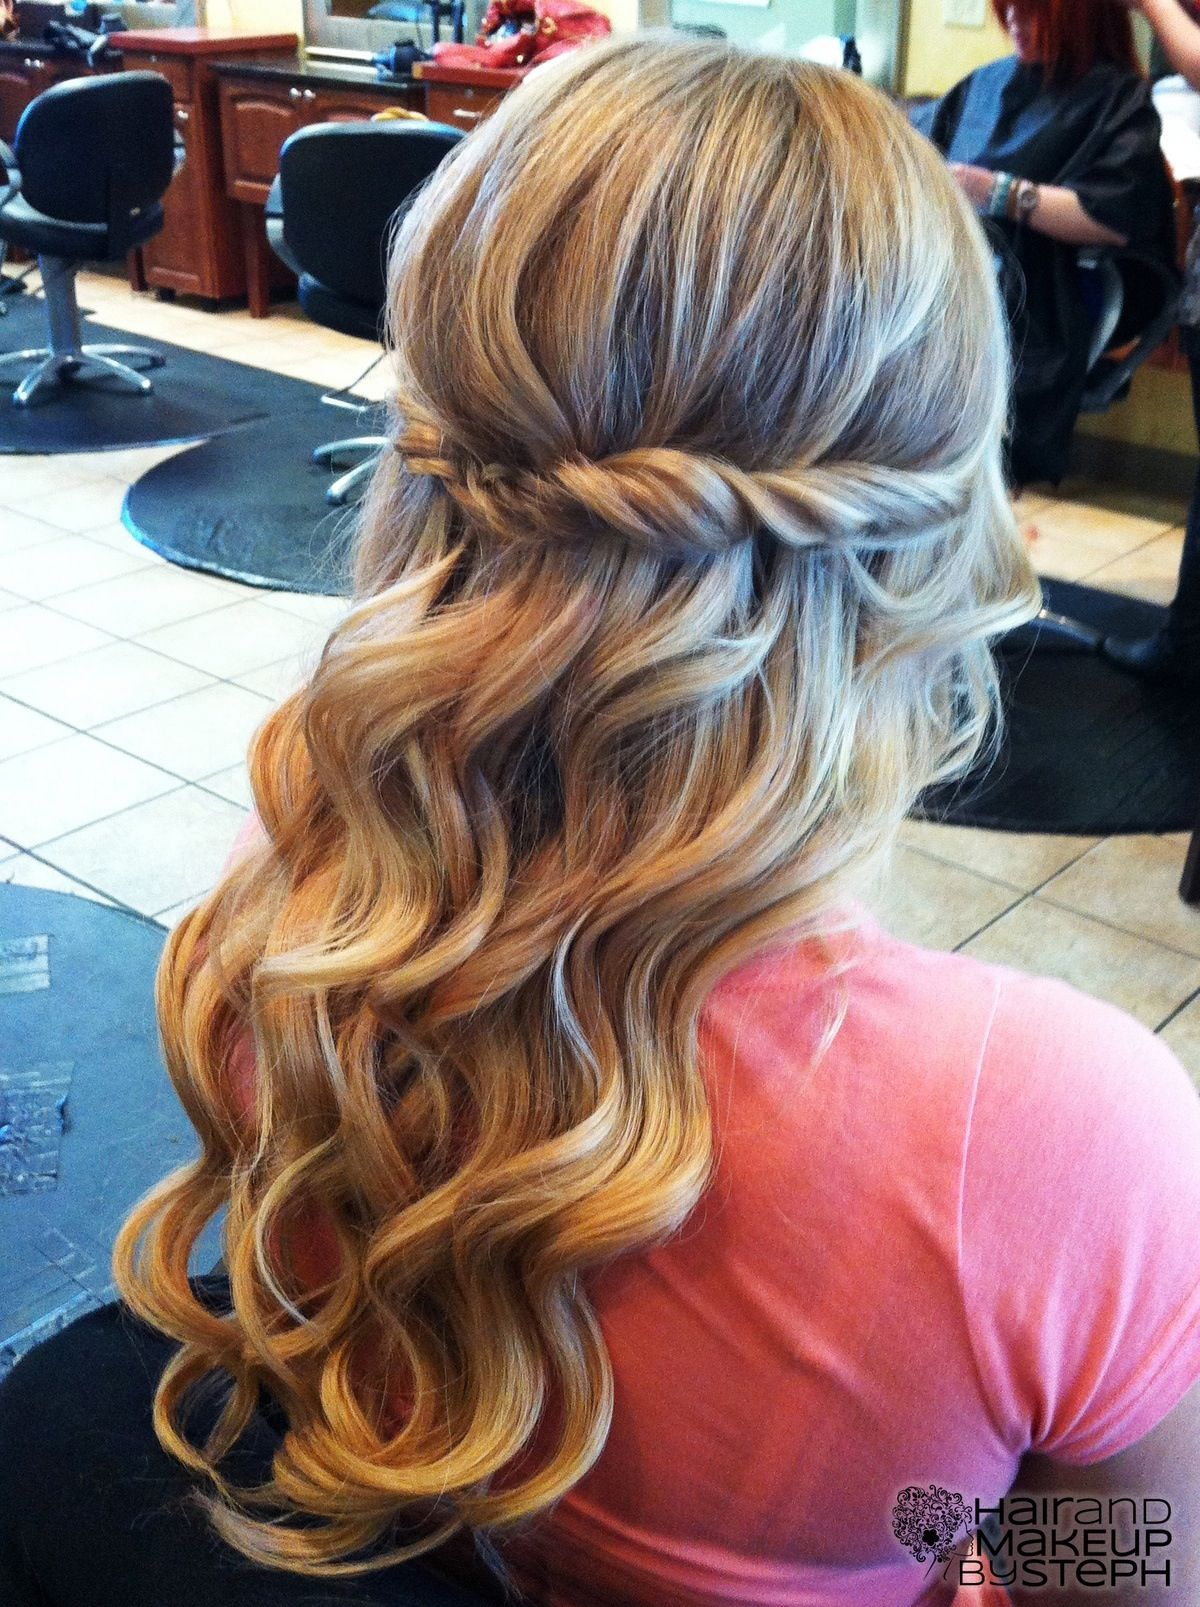 half up wedding hair | Hair & Beauty | Pinterest